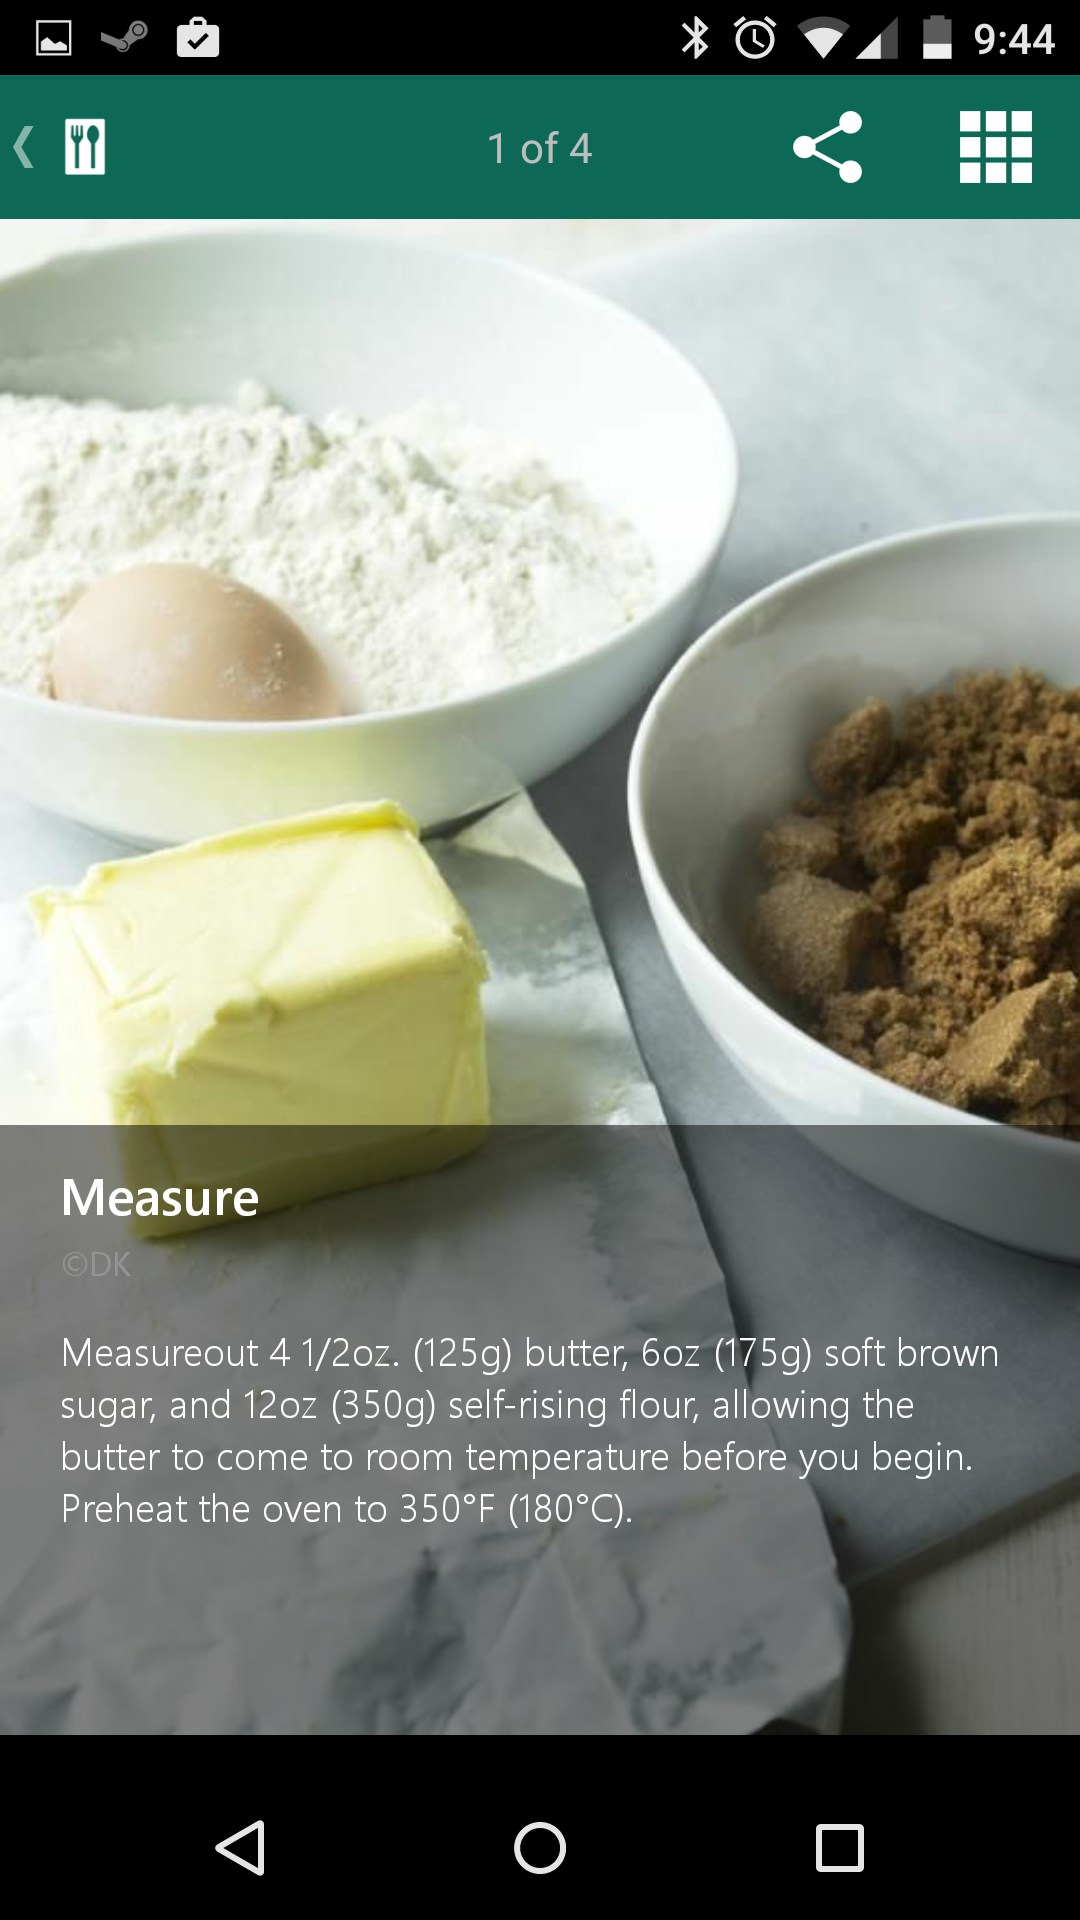 msn food drink recipes app